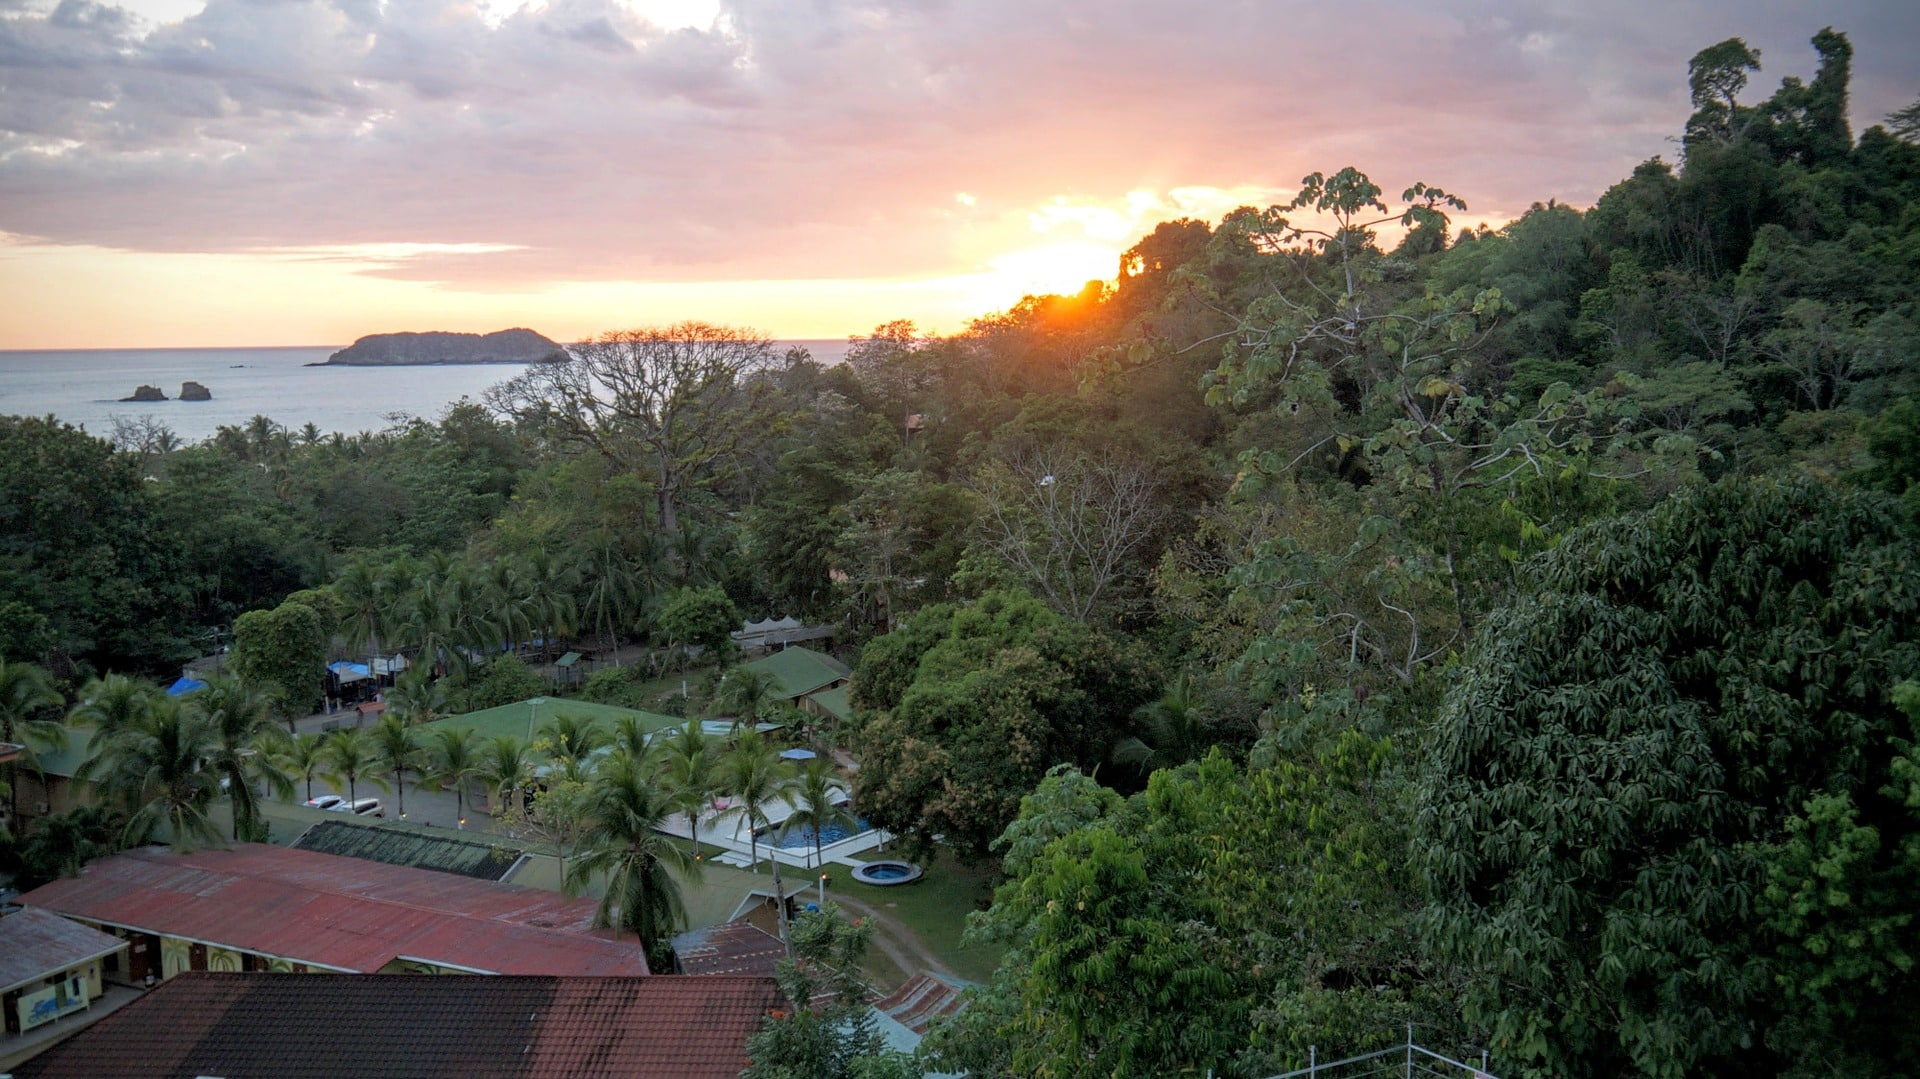 backpacking Costa Rica, things to do in Costa Rica, places to visit in Costa Rica, best time to visit in Costa Rica, Festivals in Costa Rica, 2 week itinerary in Costa Rica